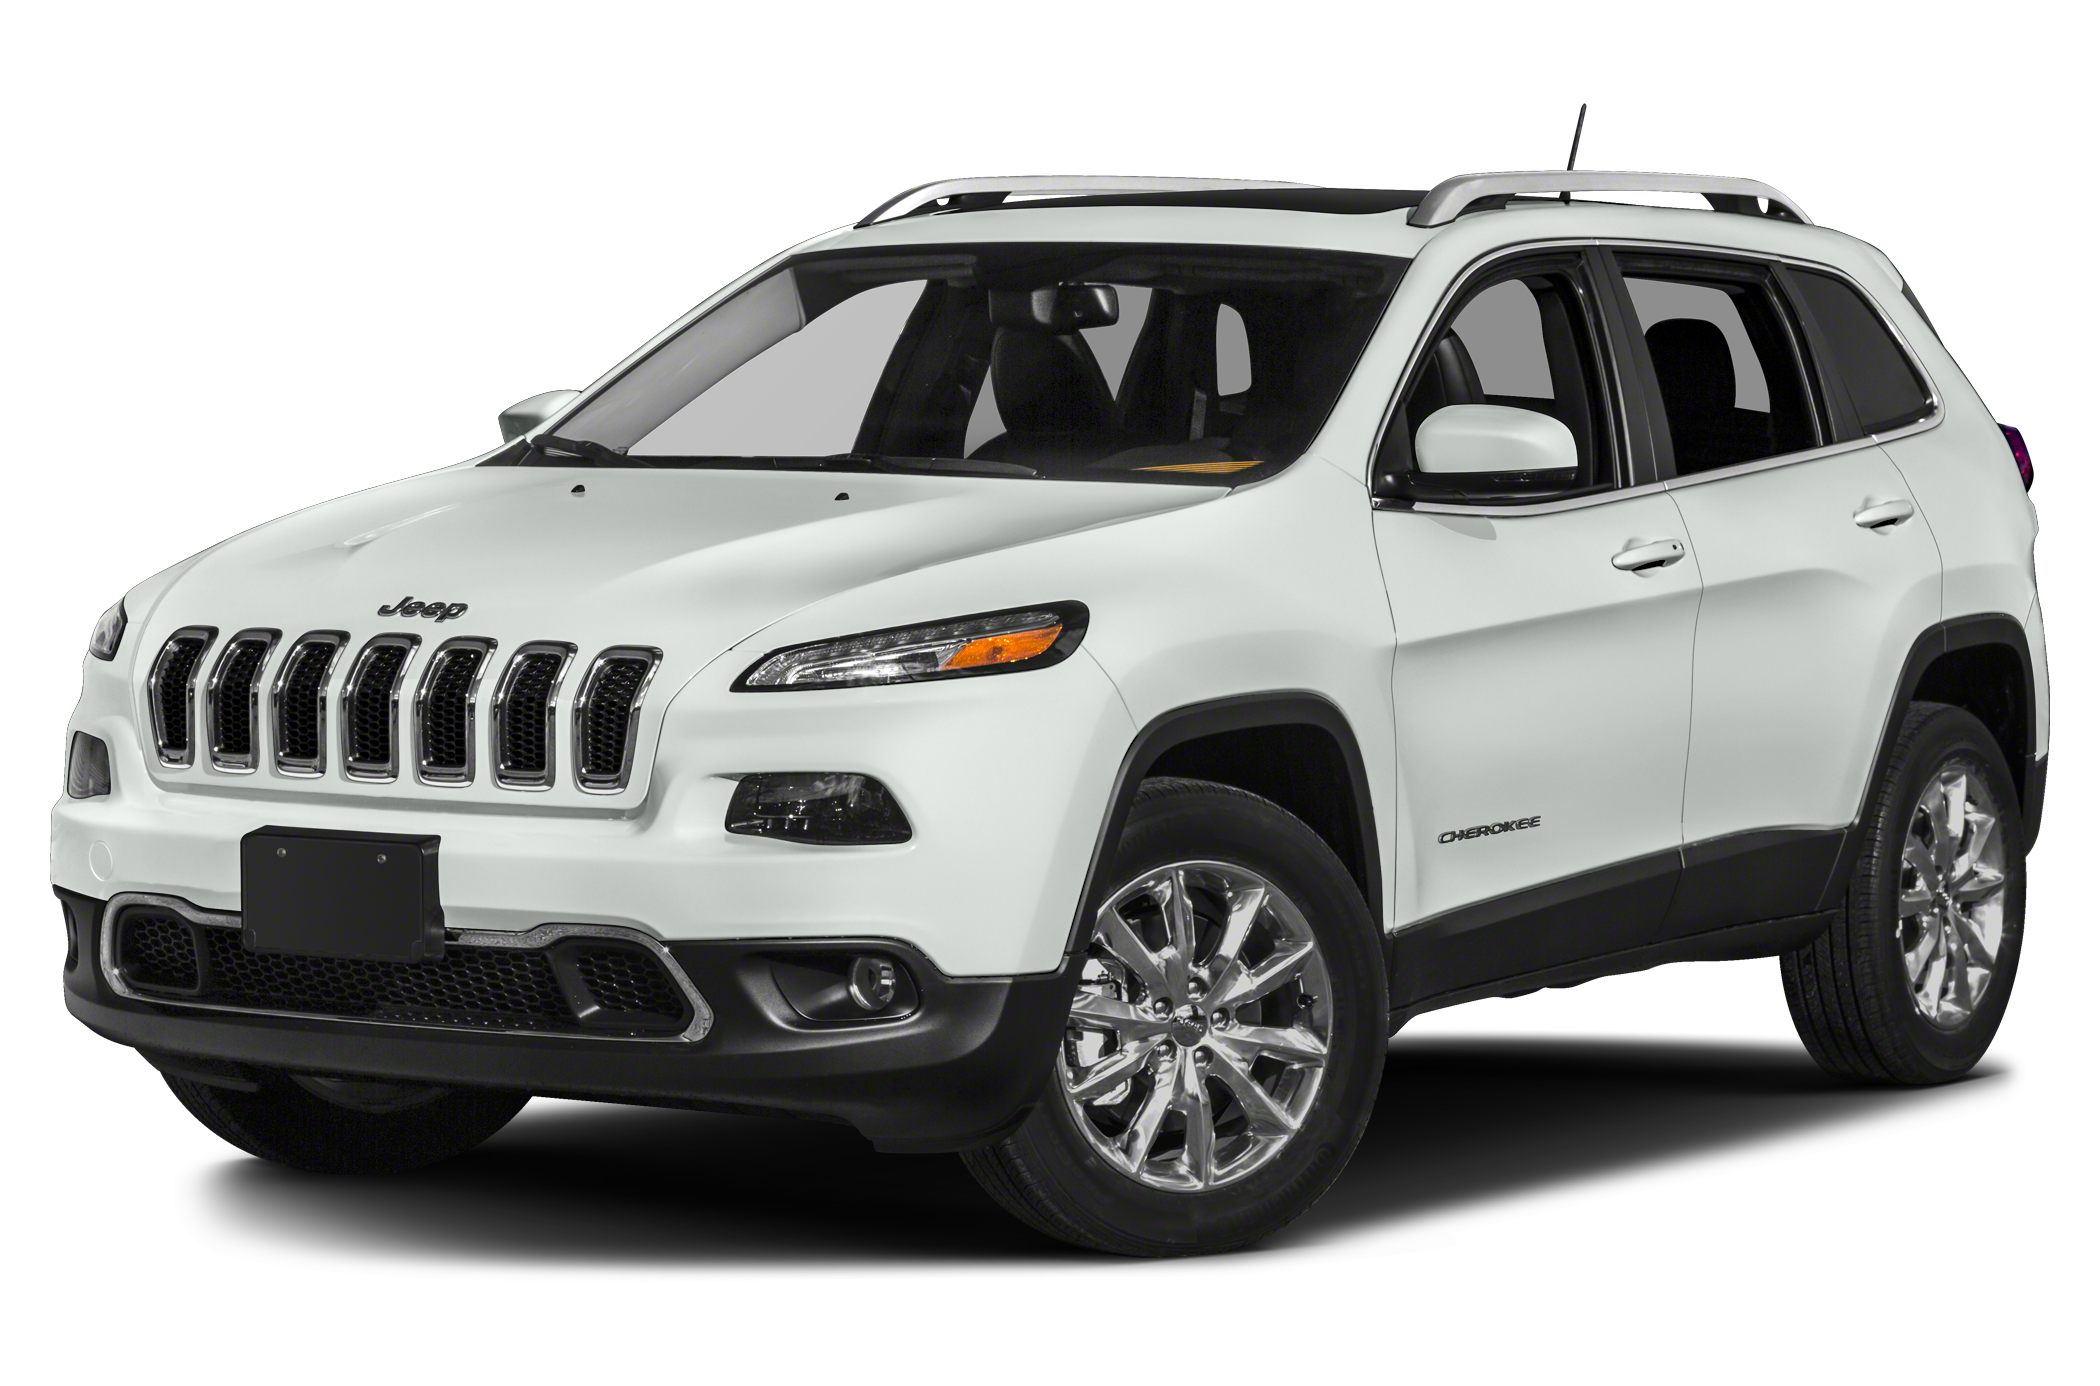 2014 Jeep Cherokee Latitude SUV for sale in Woodville for $23,637 with 35,483 miles